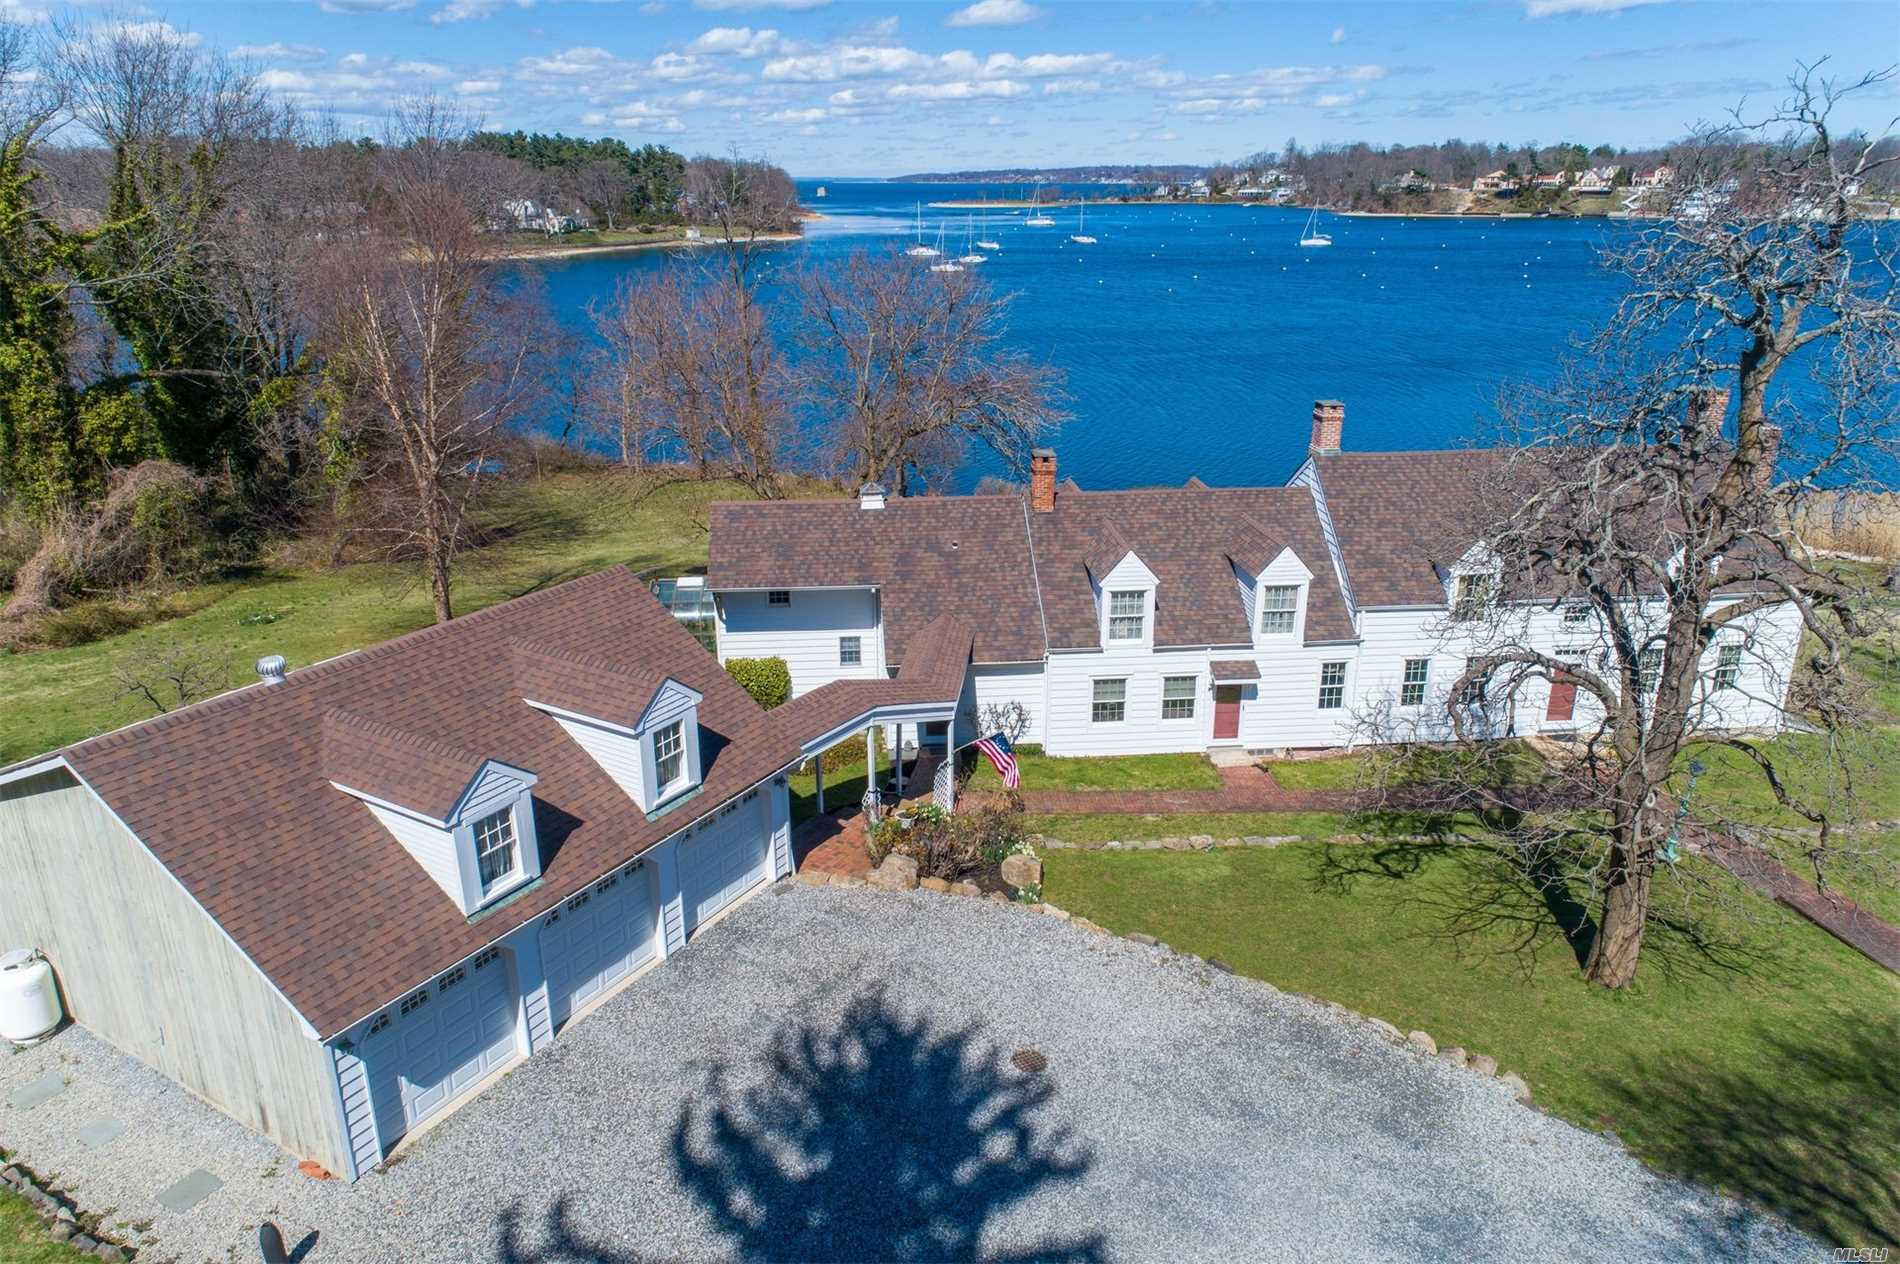 Breathtaking Waterfront Farmhouse The Homestead Built In 1735 Situated On 3.6 Acres Of Pristine Property.Filled With History, Go Back In Time To See The Many Features This Special Home Has To Offer, Wide Plank Floors, Custom Moldings, 4 Fireplaces, Sleeping Porch, & 6 Car Garage. Many Updates Include Roof, Oil Burner, Thermopane Windows, Central Air, & Automatic Generator.